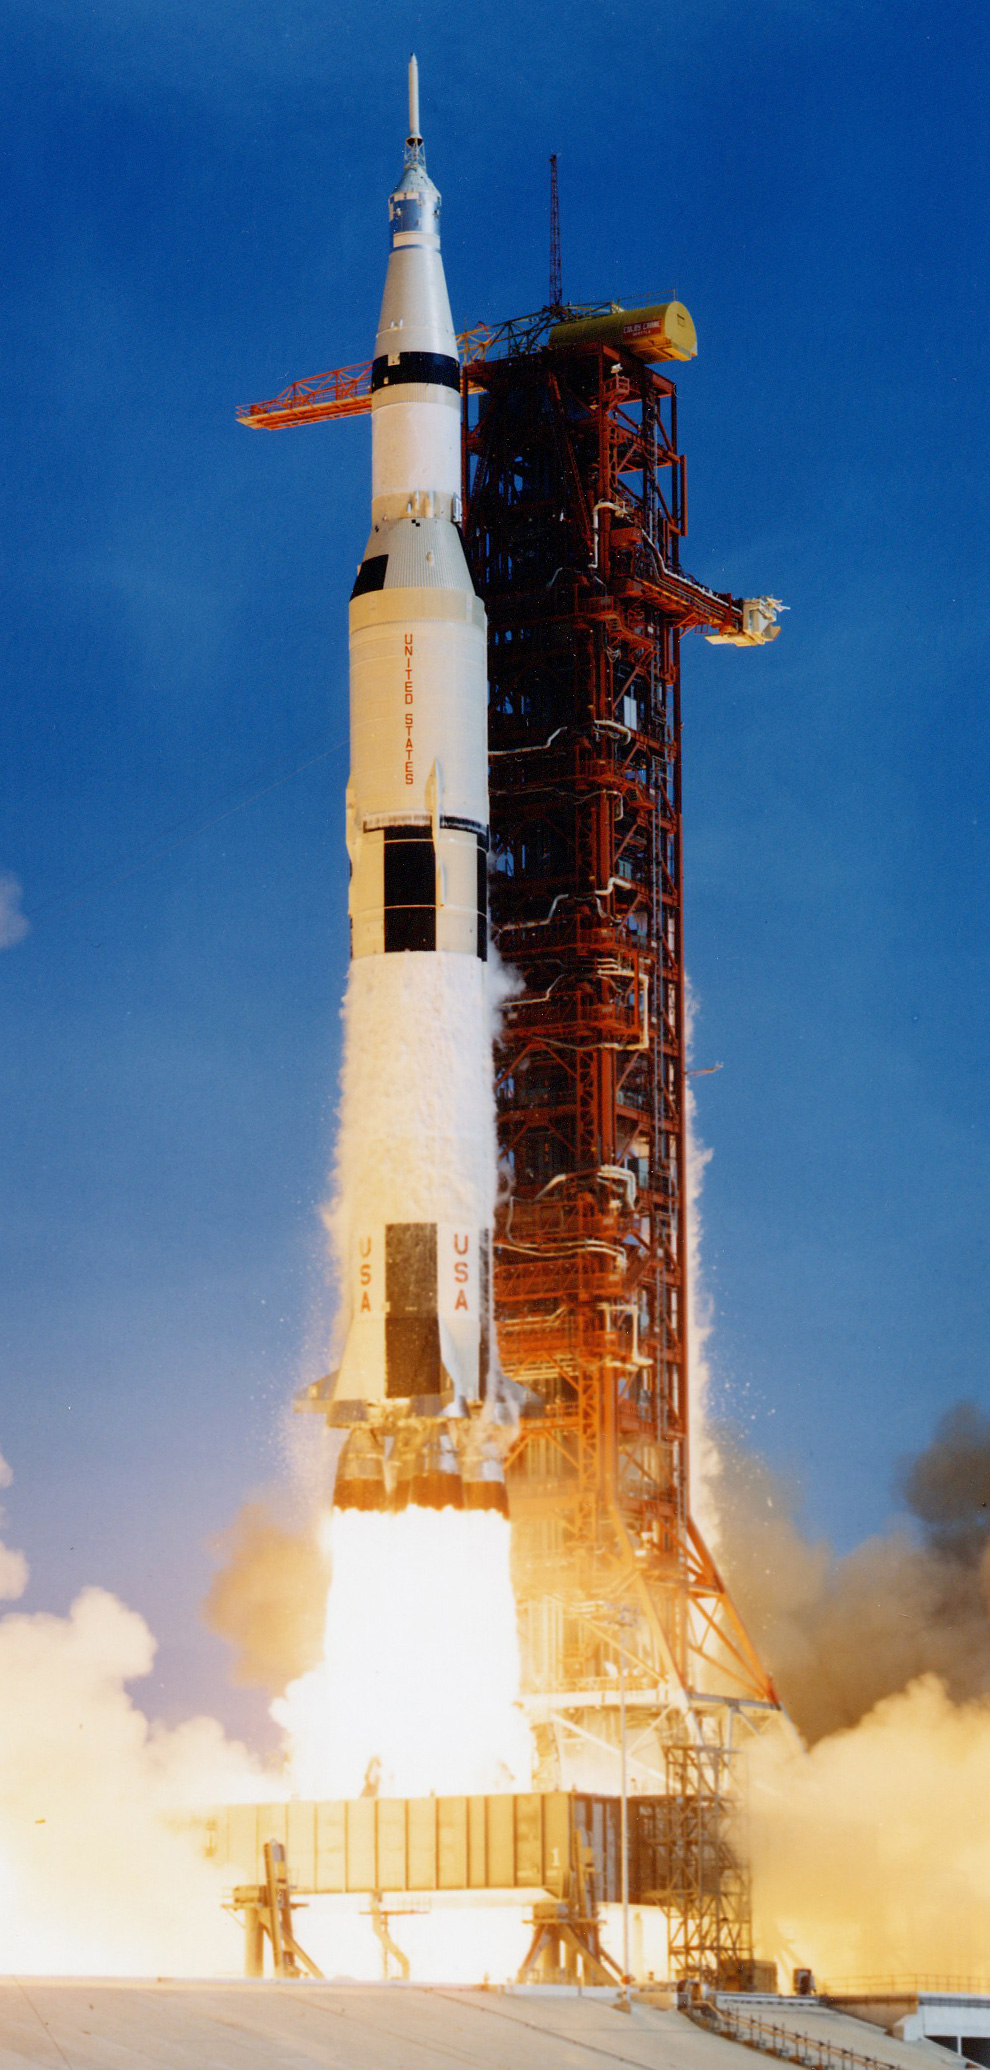 Saturn V, Apollo 11, July 1969